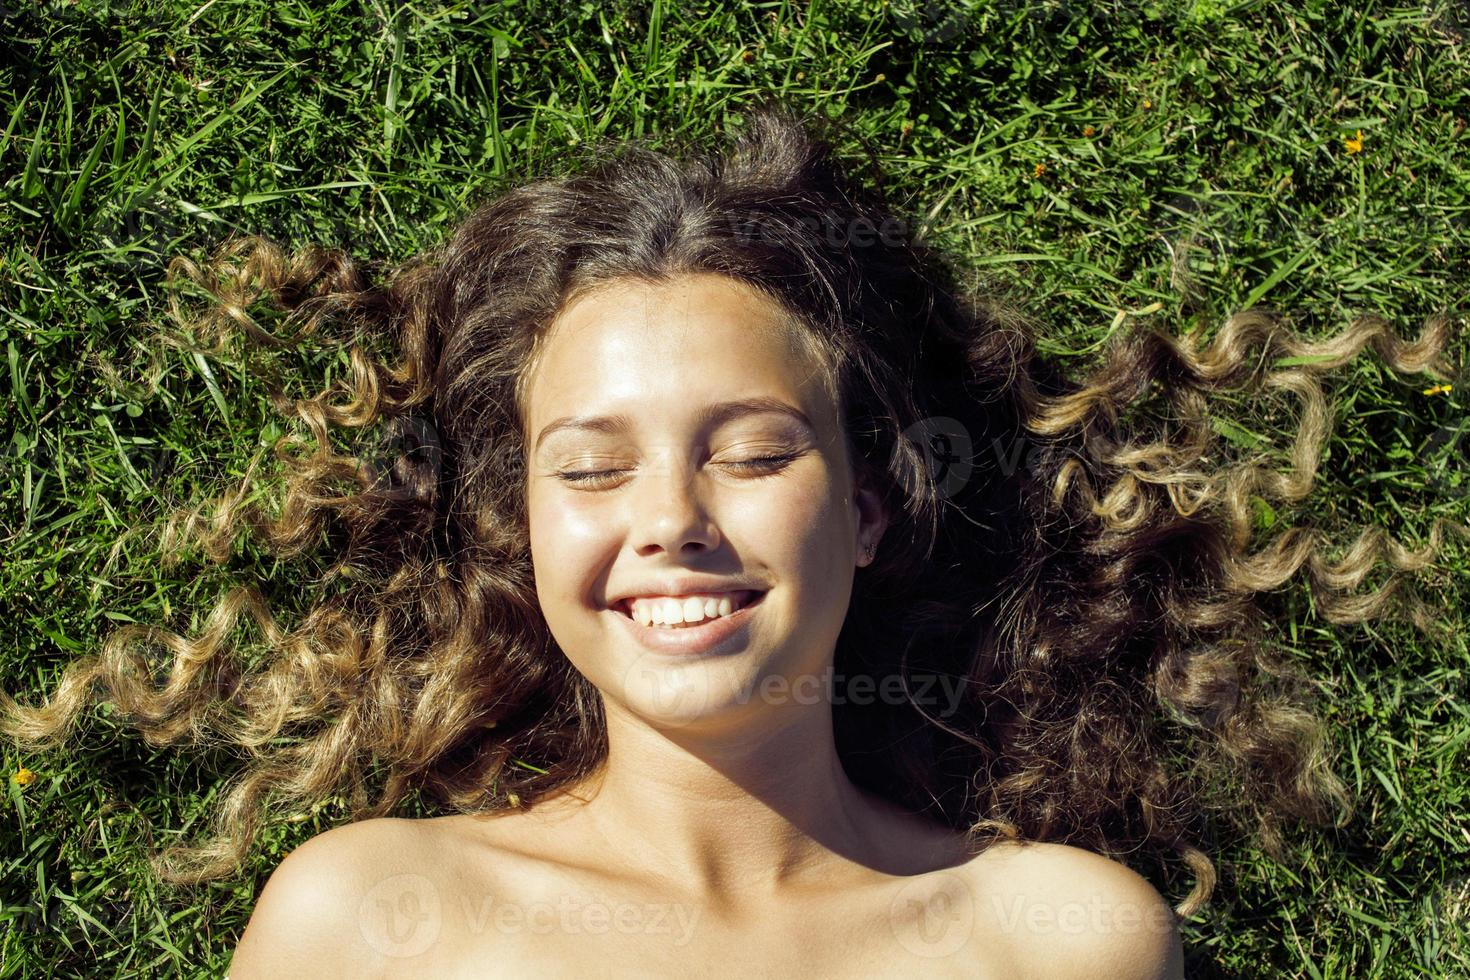 young cute summer girl on grass outside relaxing smiling photo